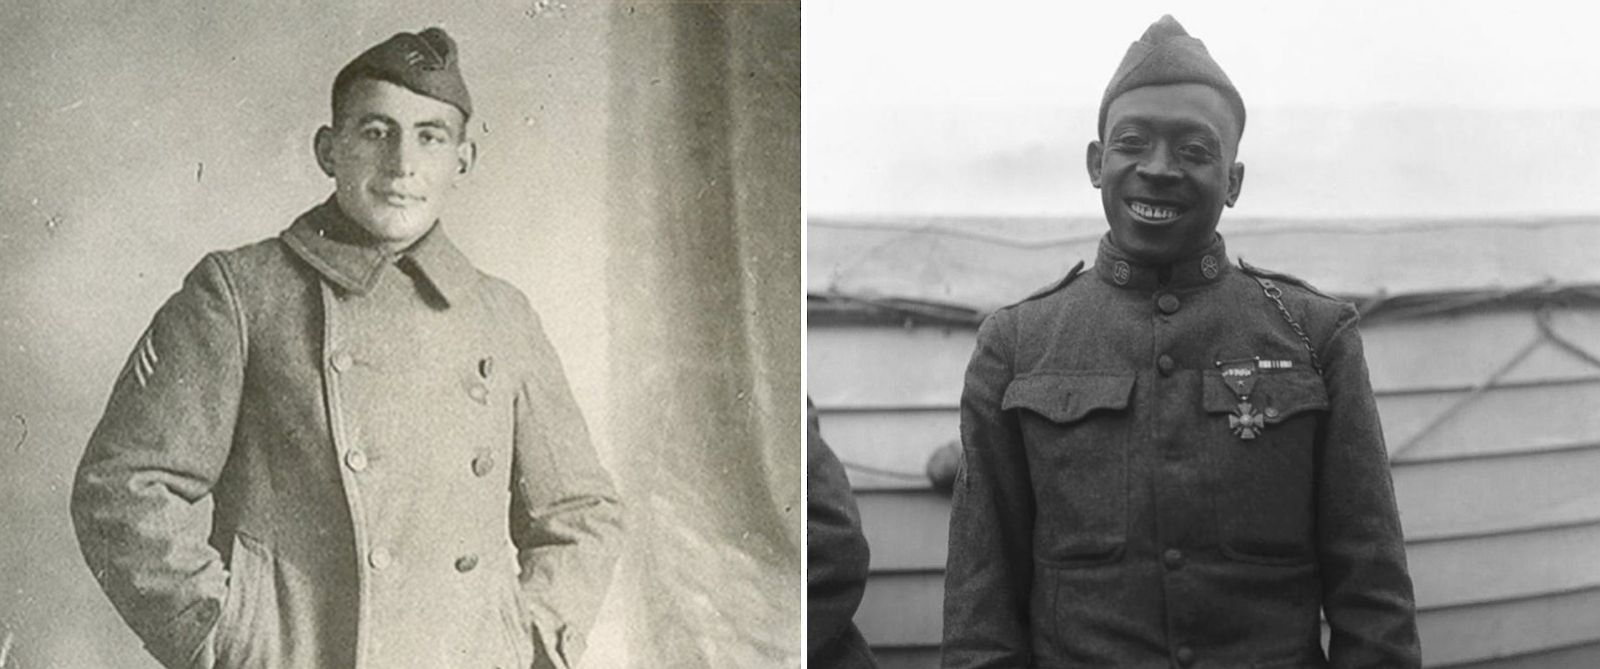 african americans in world war i essay Historical analysis of race in world war i world war i through the lens of race   but world war i marked a turning point for black soldiers, both on the.